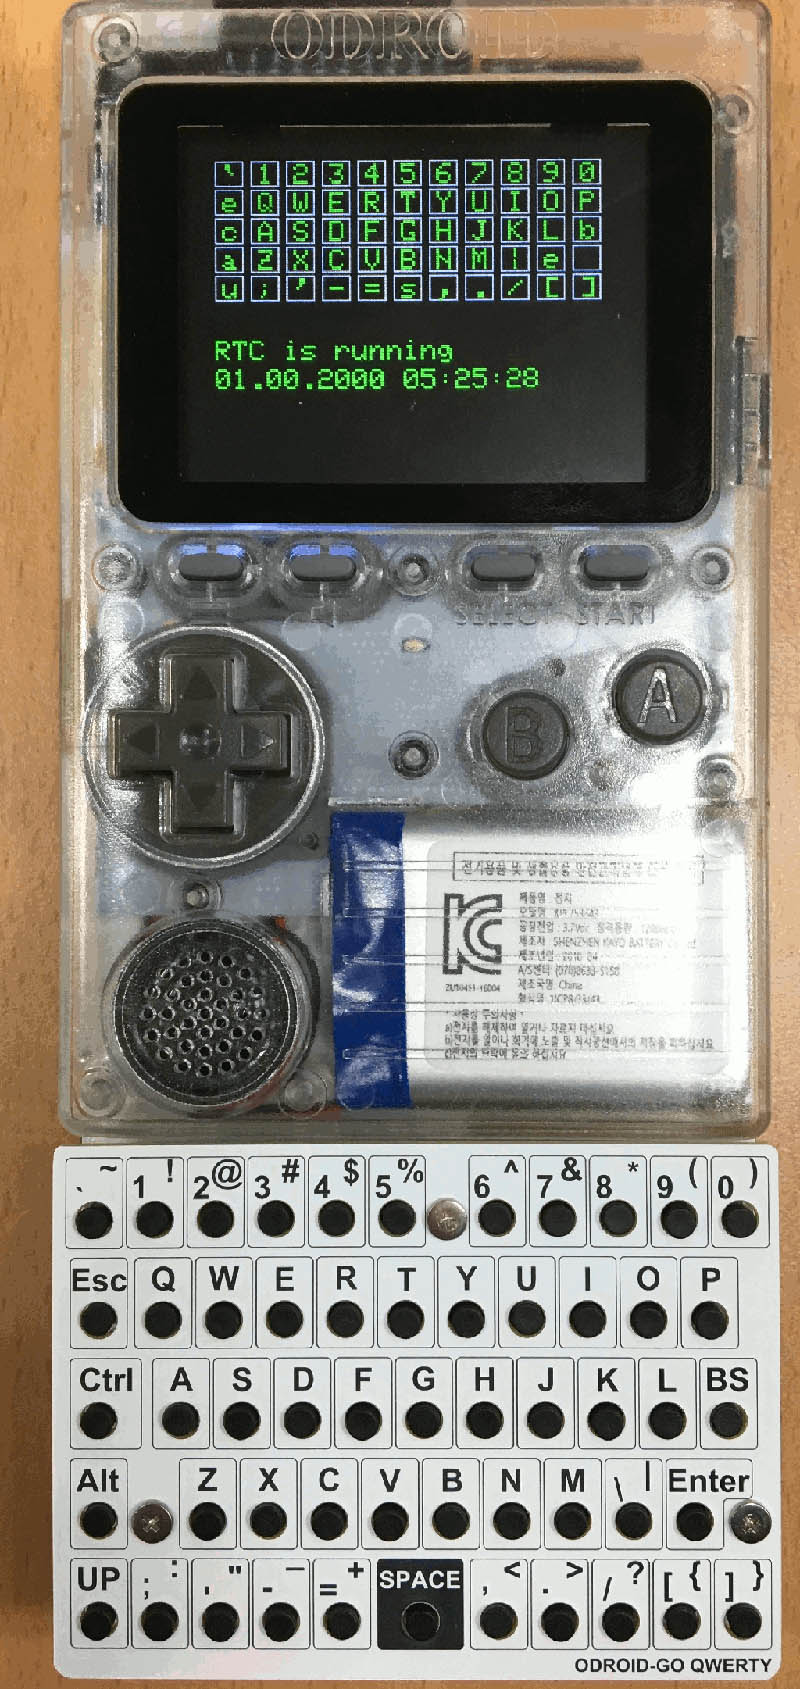 Figure 1 - Keyboard for the ODROID-GO